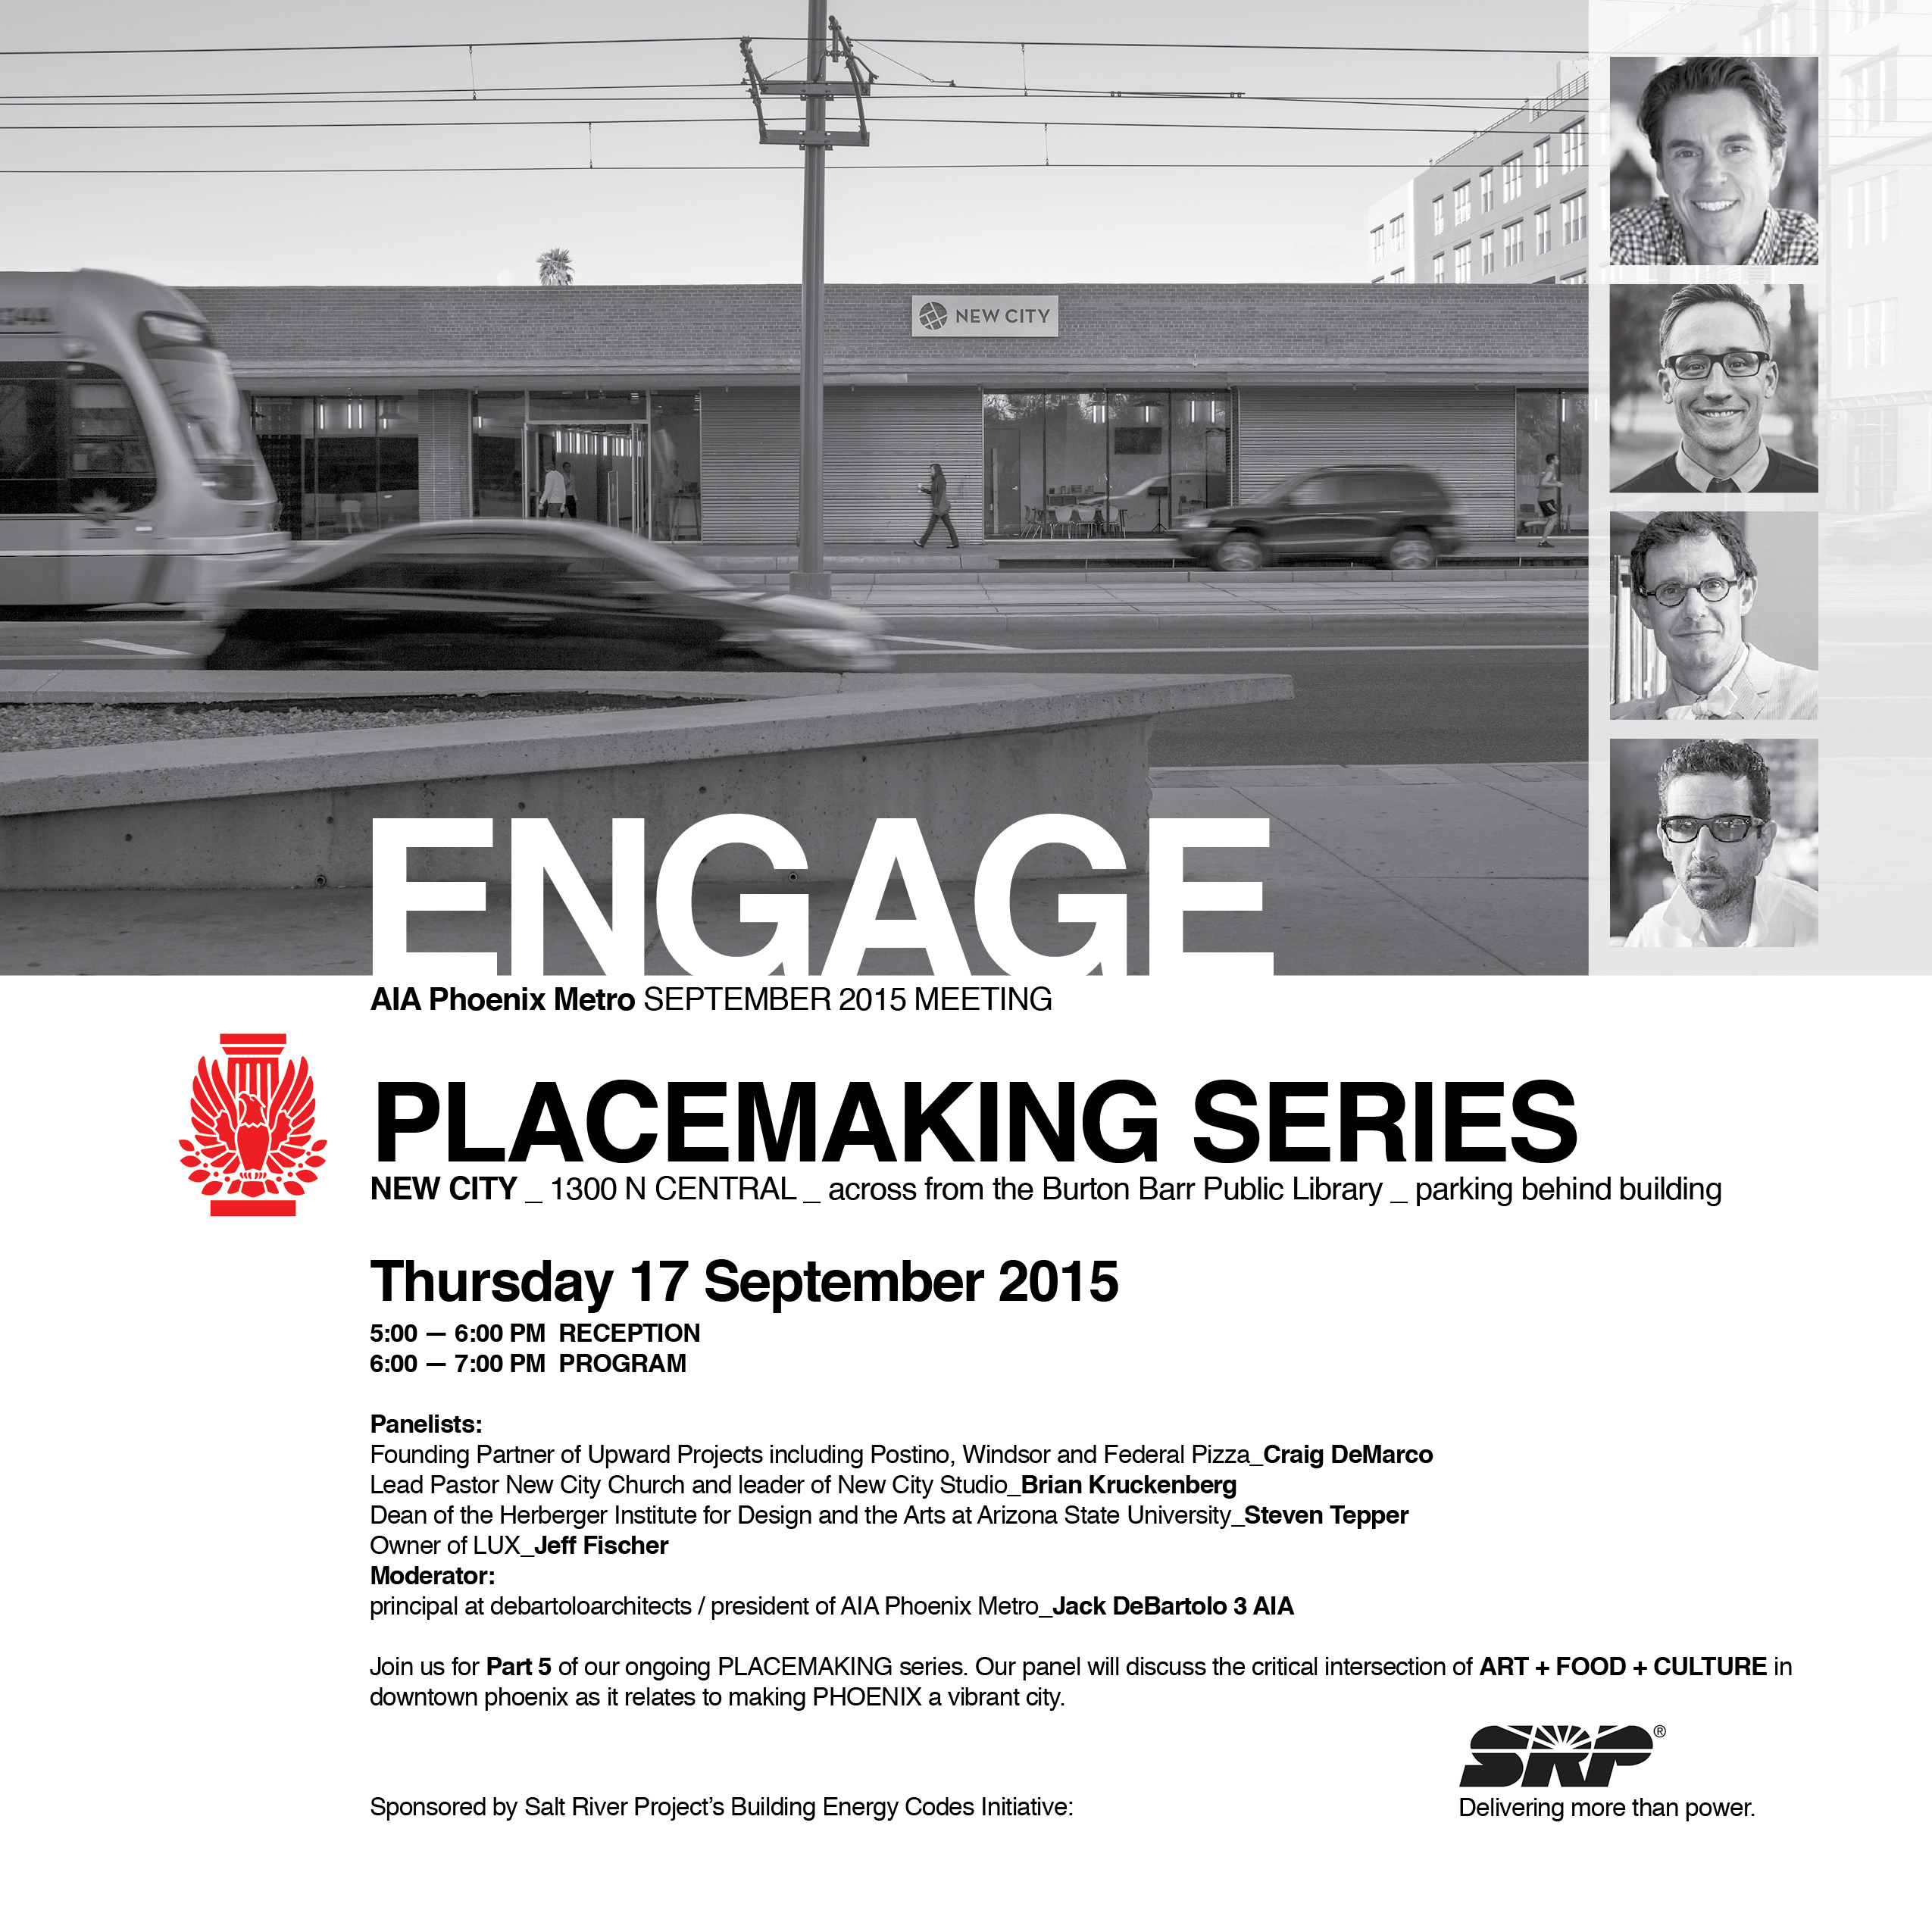 Placemaking Series: Art + Food + Culture